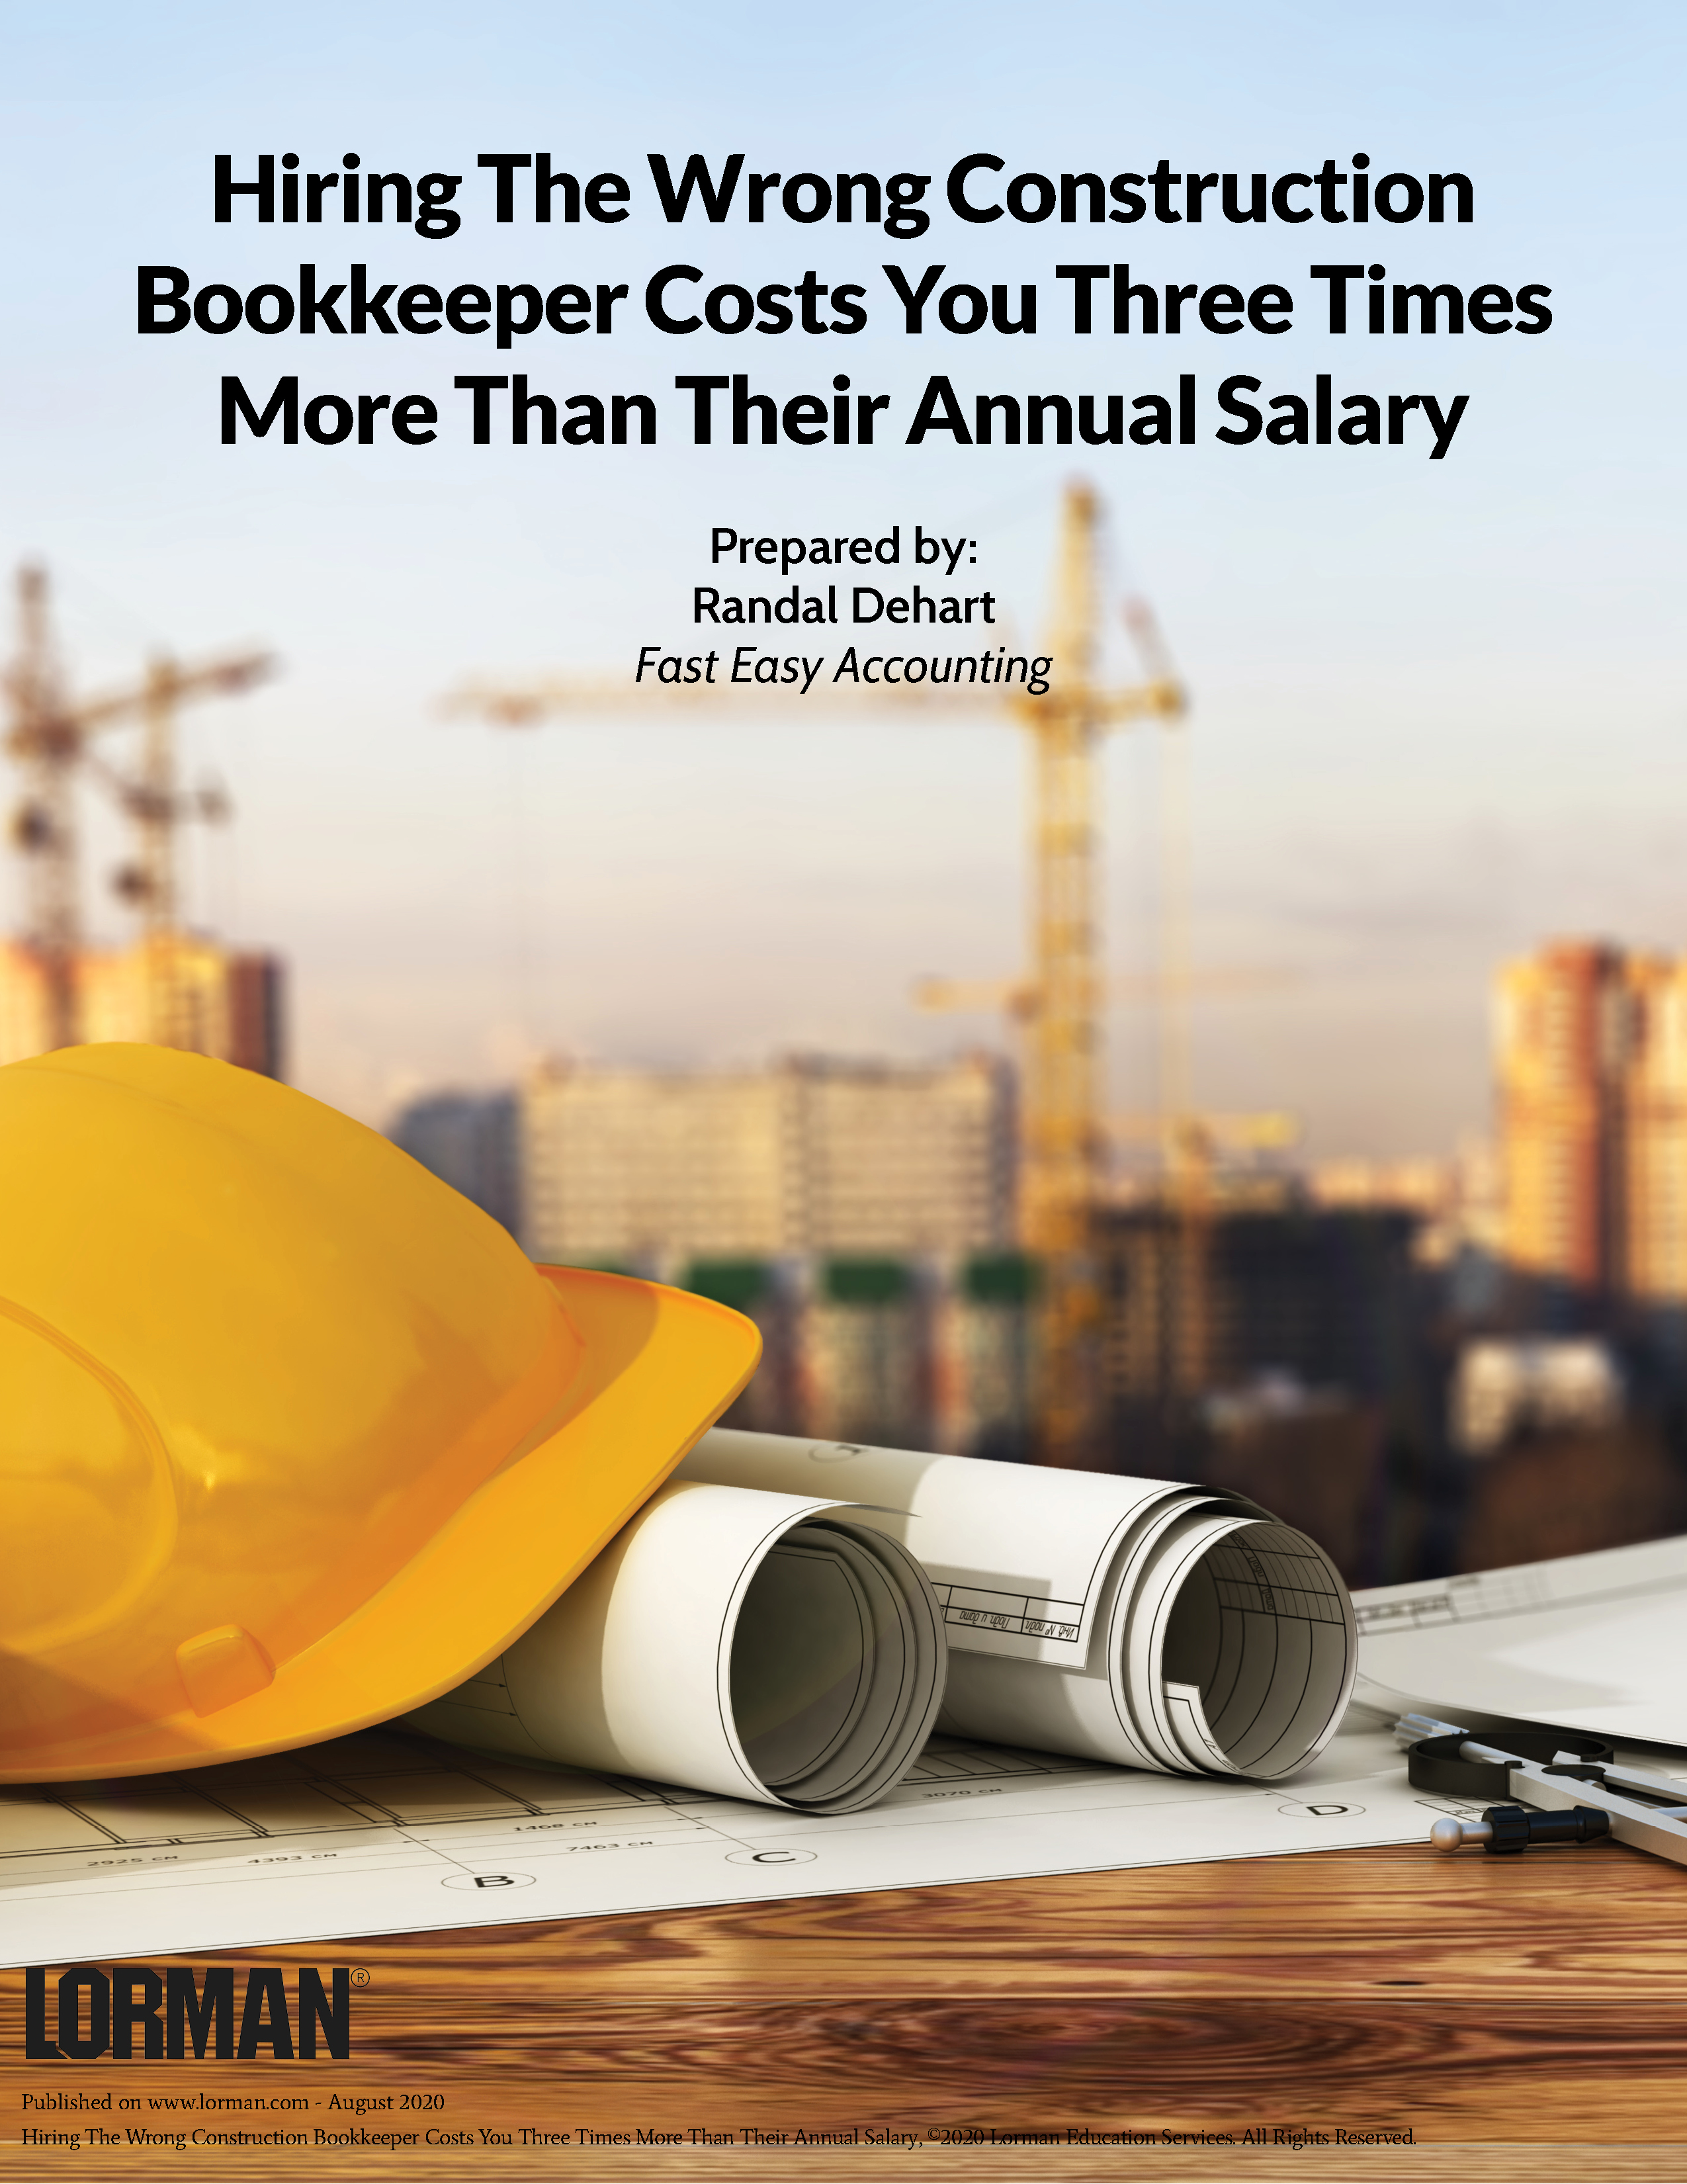 Hiring the Wrong Construction Bookkeeper Costs You Three Times More Than Their Annual Salary